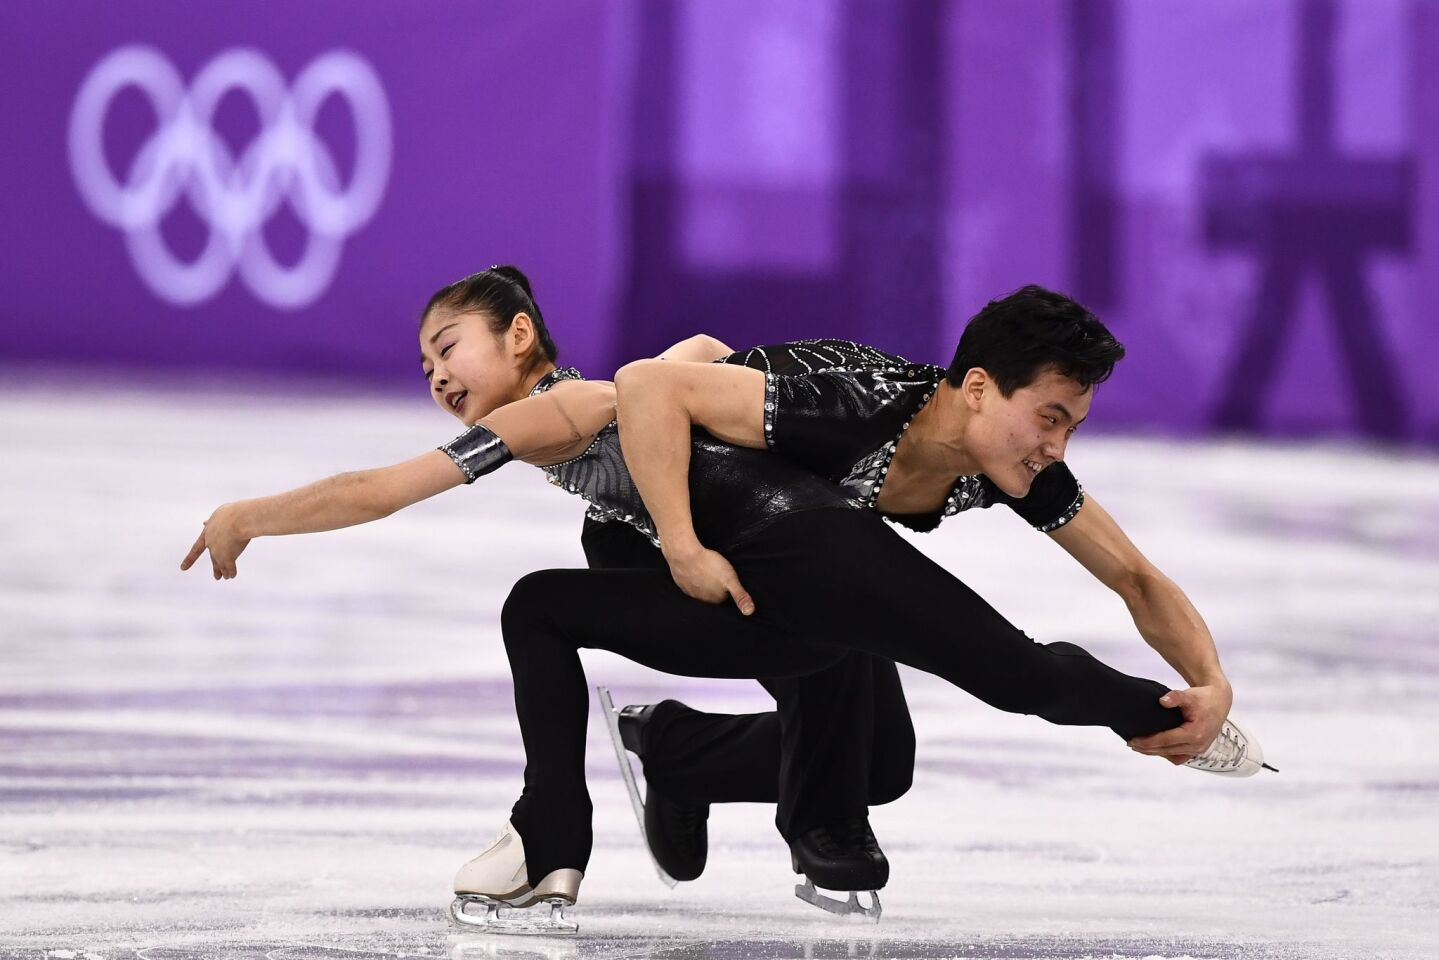 North Korea's Ryom Tae Ok (front) and North Korea's Kim Ju Sik hug after competing in the pair skating short program of the figure skating event during the Pyeongchang 2018 Winter Olympic Games at the Gangneung Ice Arena in Gangneung on February 14, 2018. / AFP PHOTO / Roberto SCHMIDTROBERTO SCHMIDT/AFP/Getty Images ** OUTS - ELSENT, FPG, CM - OUTS * NM, PH, VA if sourced by CT, LA or MoD **